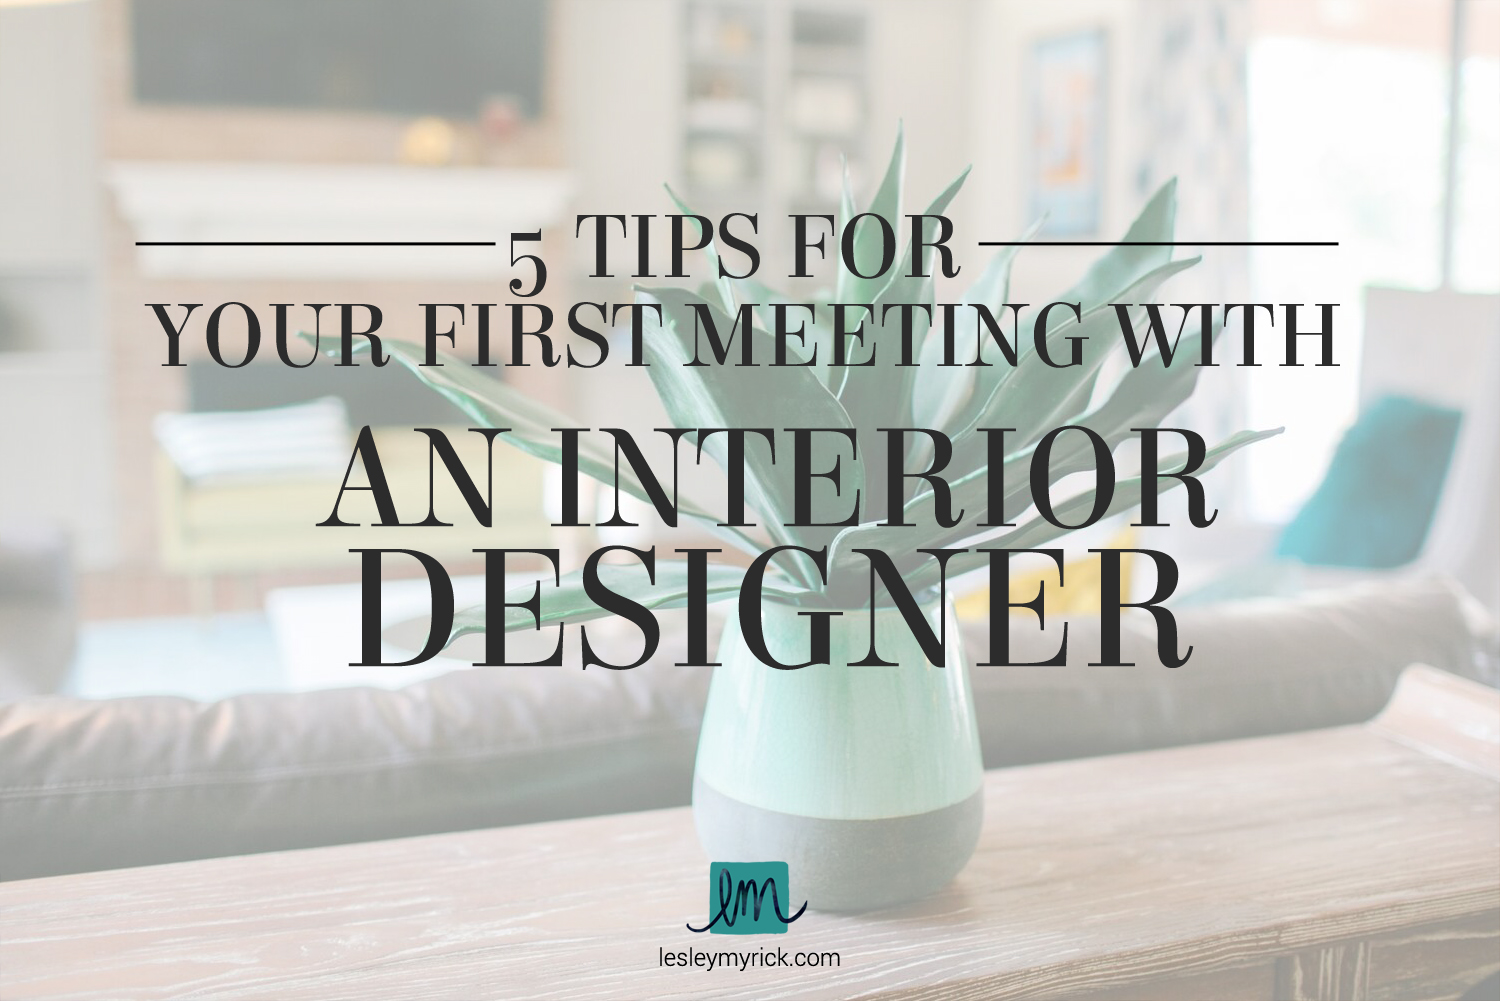 Interior Designer Tips 5 tips for your first meeting with an interior designer lesley 5 tips for your first meeting with an interior designer lesley myrick art design sisterspd